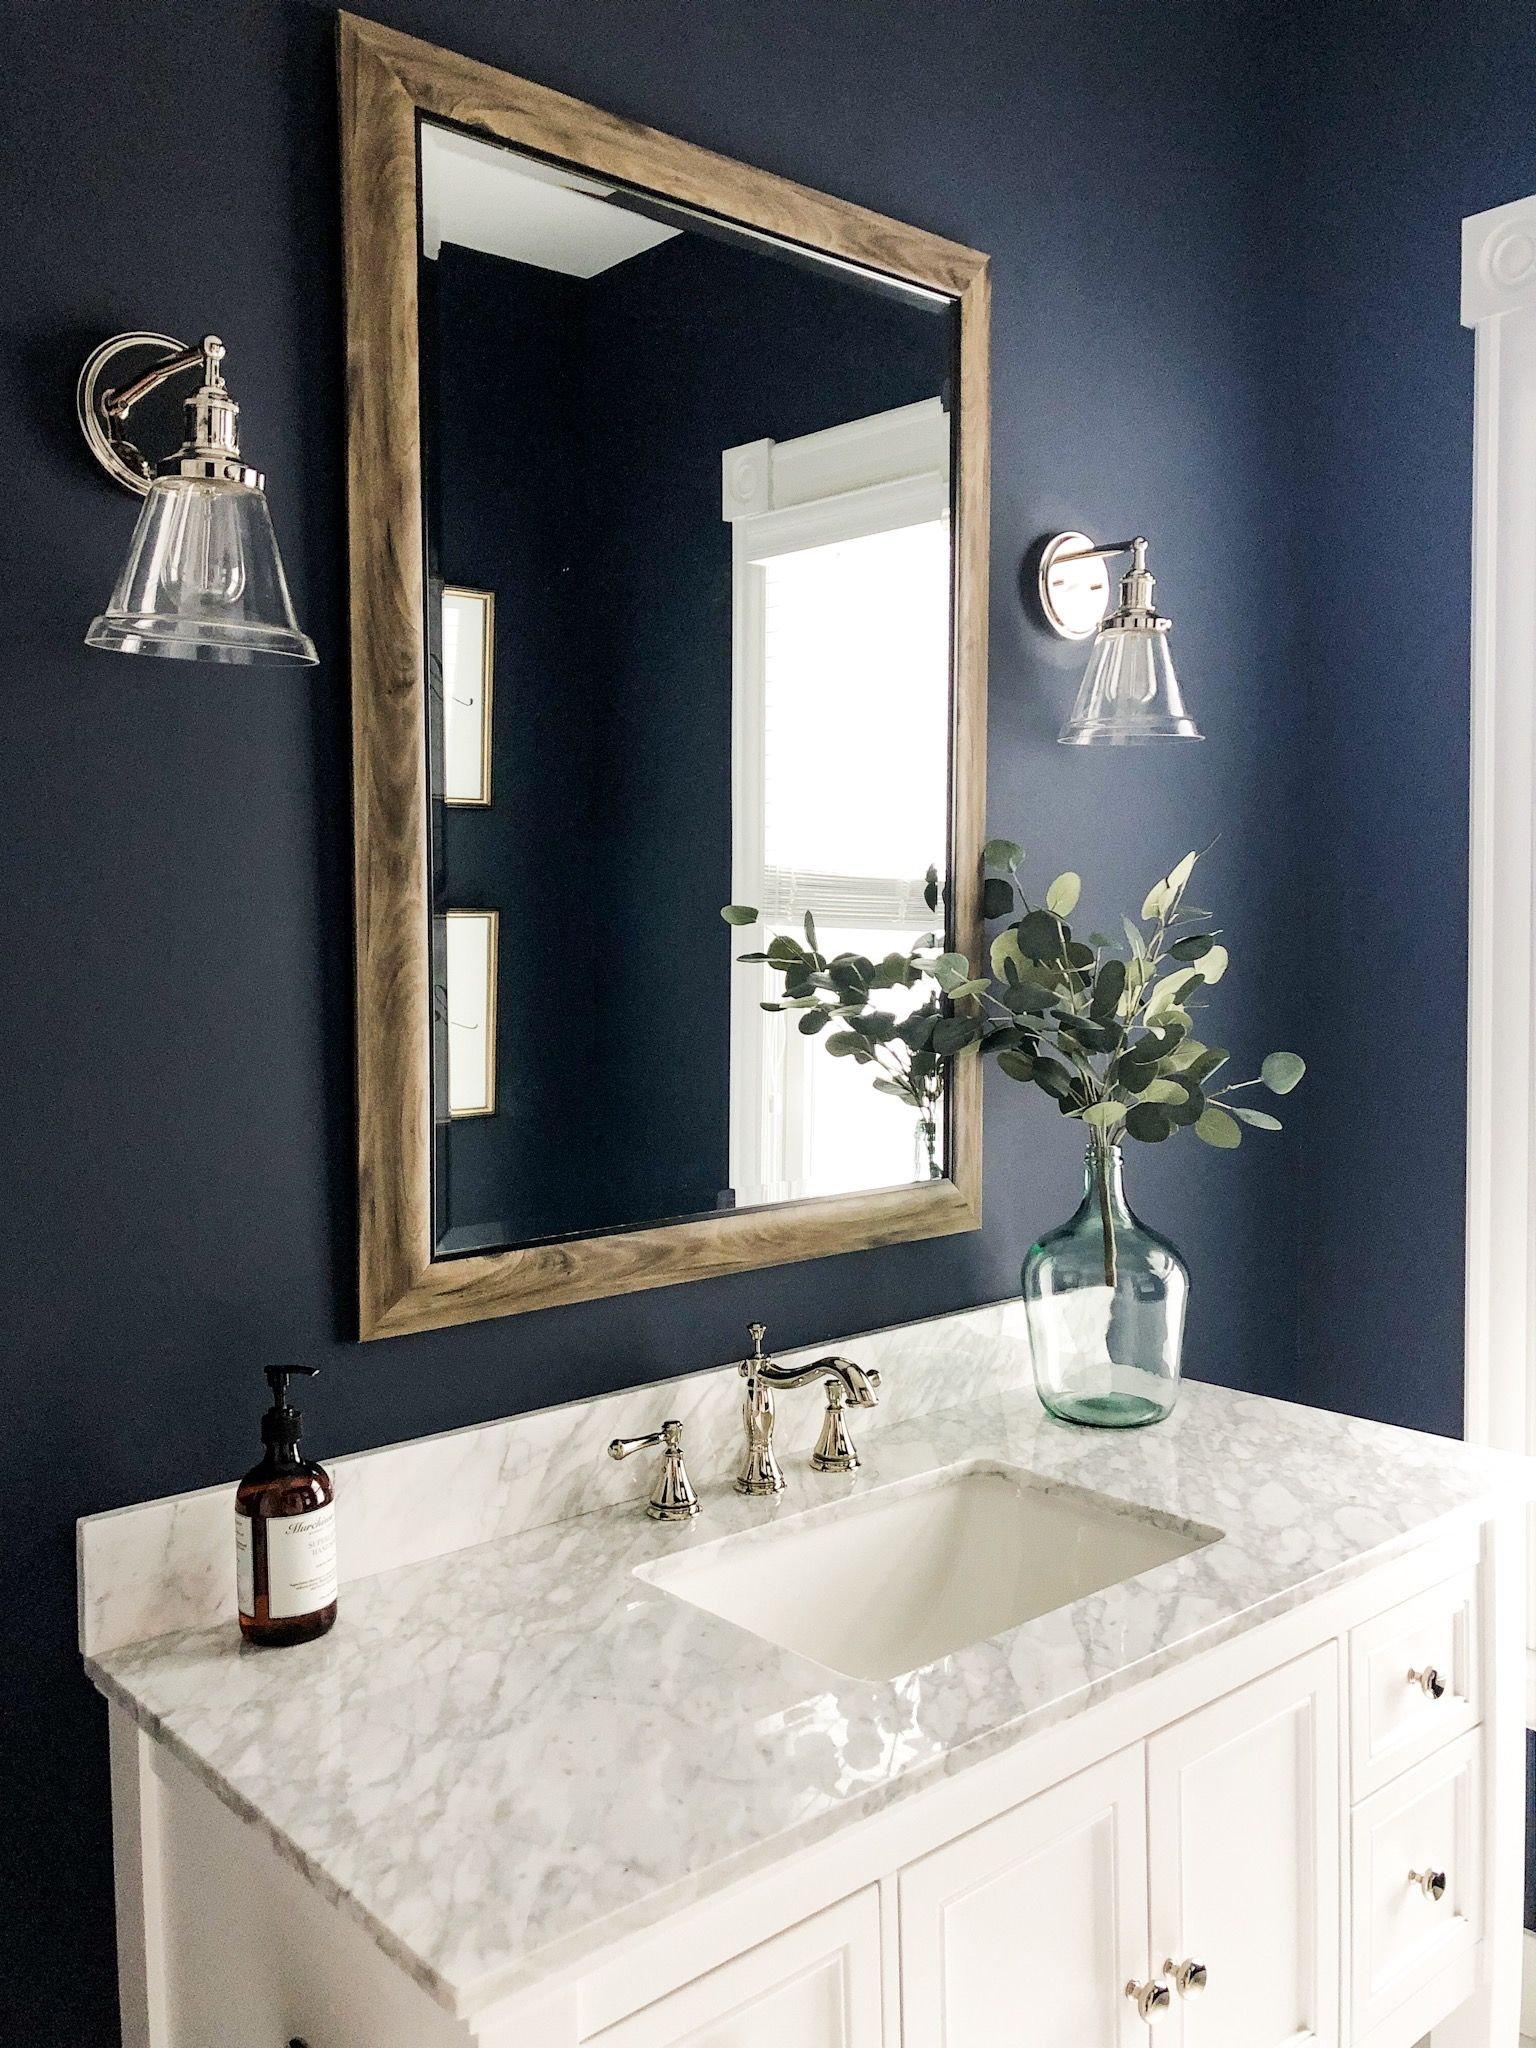 Deep Blue Bathroom Paint Color Powder Room Decor Bonus Bathroom Inspiration Half Bath Ins Bathroom Paint Colors Blue Powder Room Decor Bathroom Paint Colors